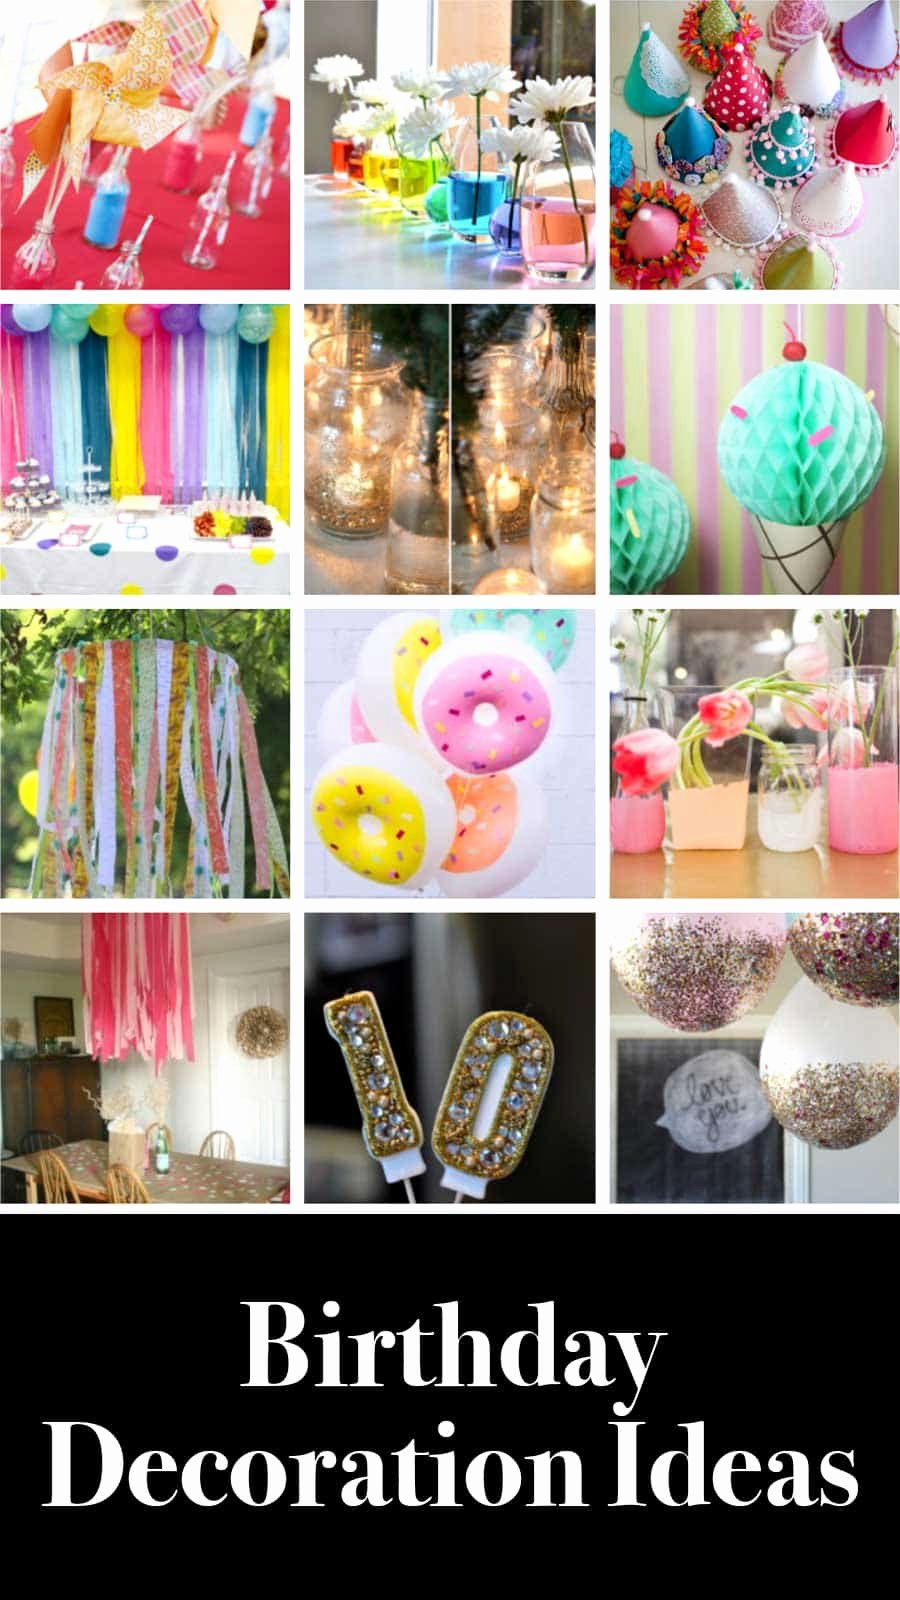 Innovative Birthday Decoration Ideas New 12 Easy Diy Birthday Decoration Ideas 2020